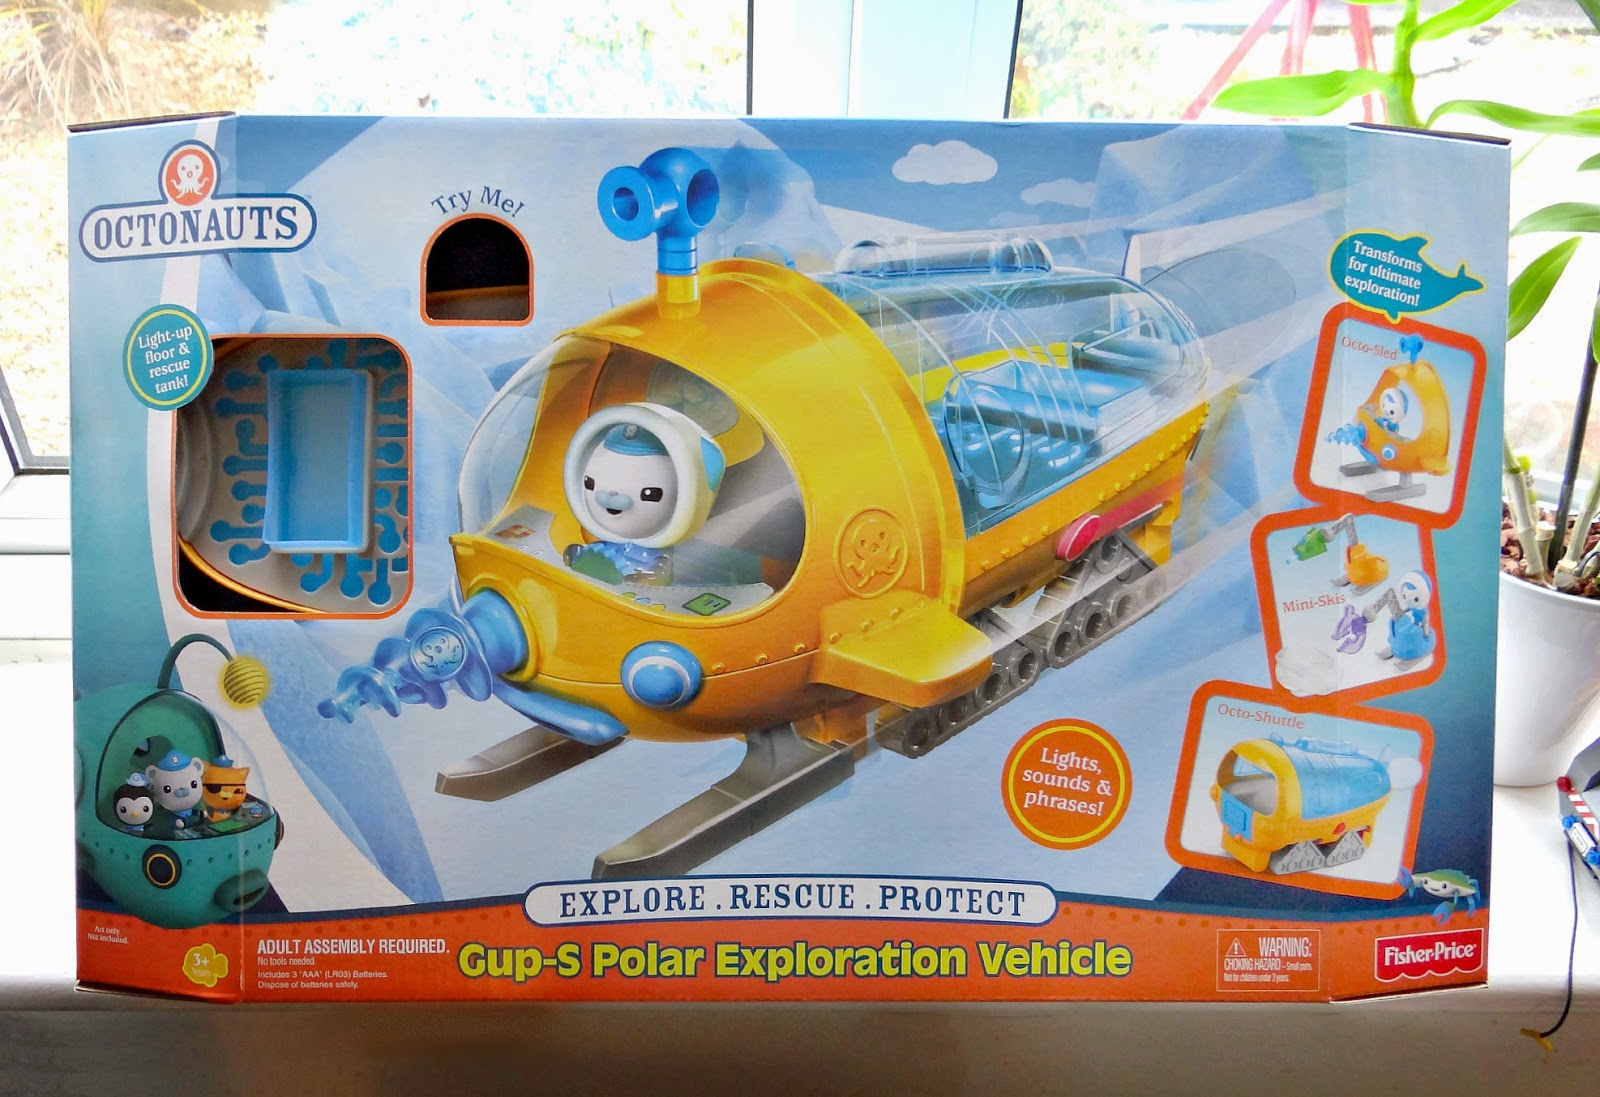 Octonauts toy, Gup S Polar Exploration Vehicle, Christmas Gifts for children